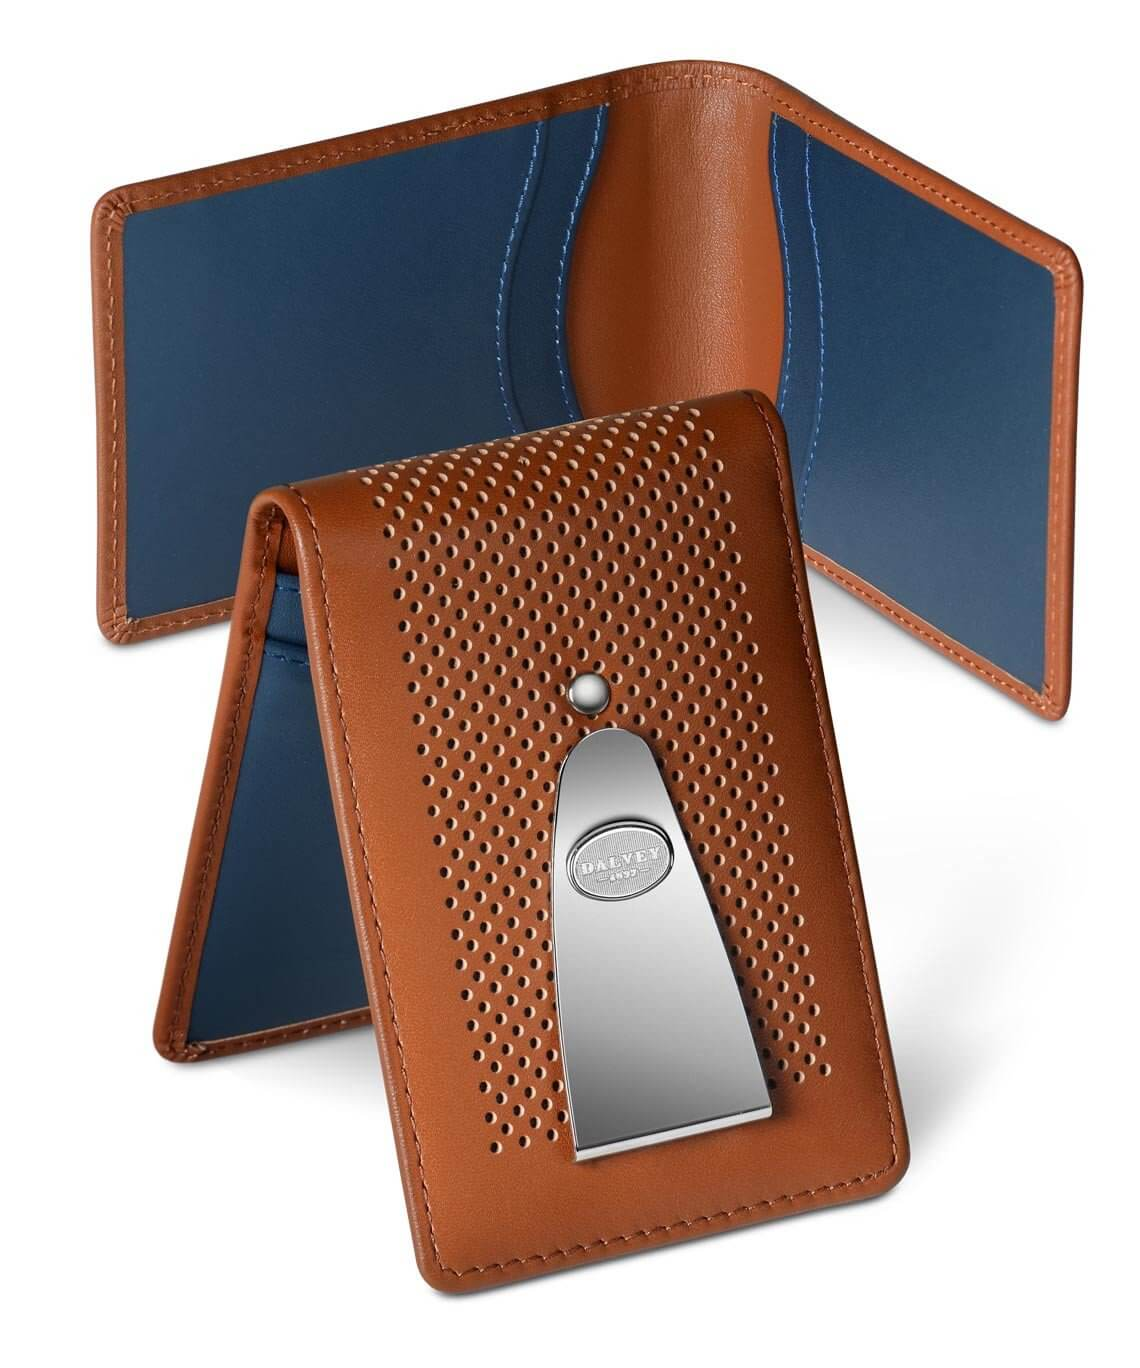 Insignia Wallet - Tan / Blue